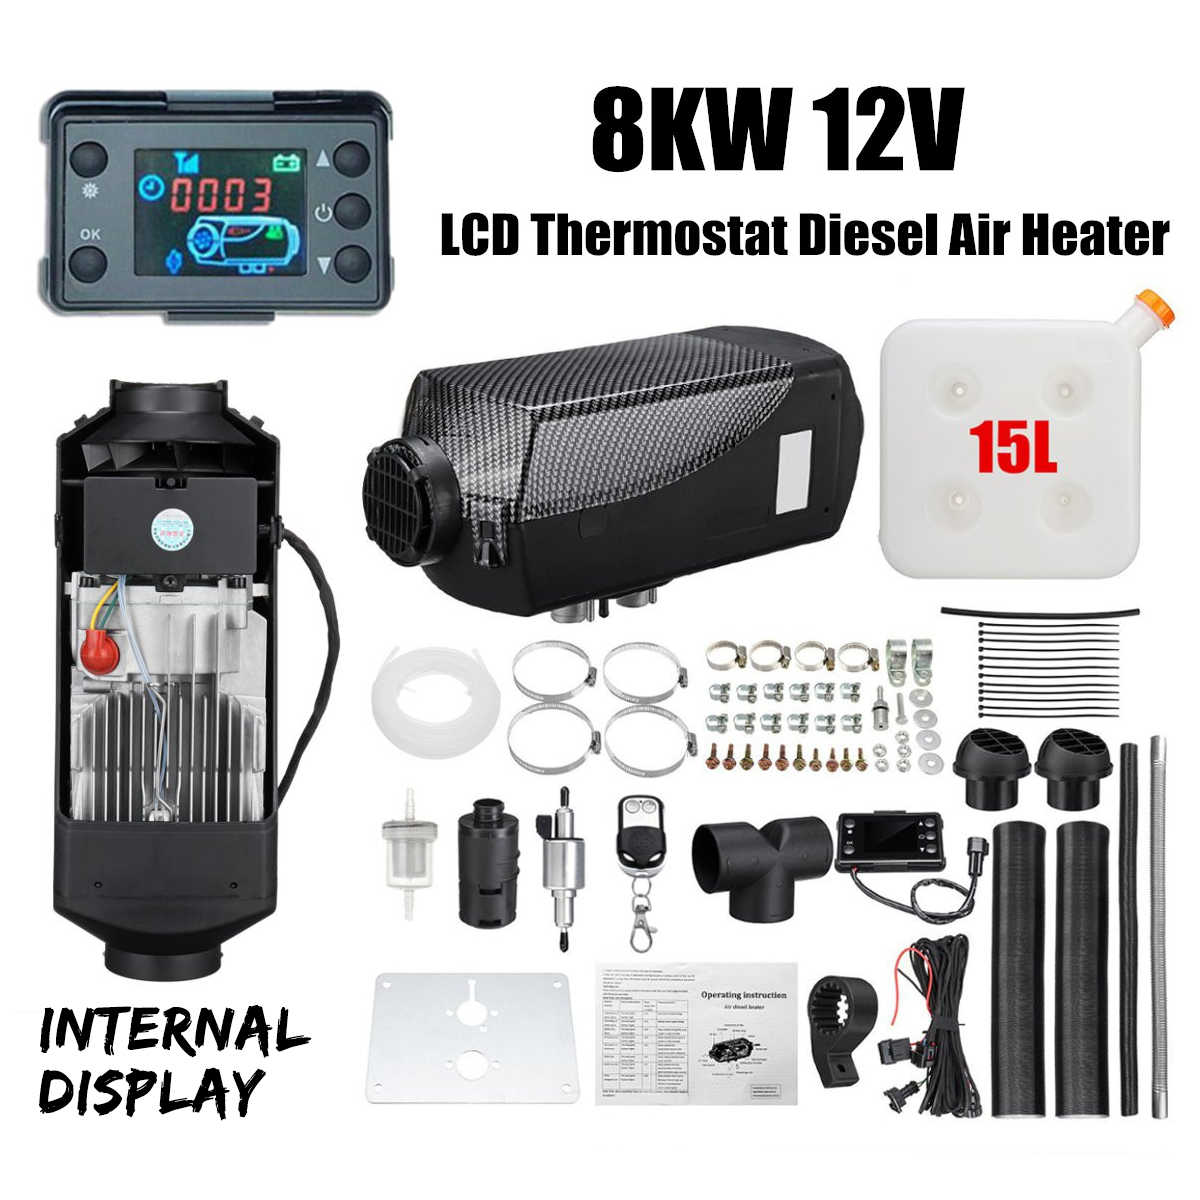 Silencer VEVOR 12V 8KW Diesel Air Heater Diesel Fuel Heater 12V All in One Diesel Air Heater with LCD Switch Remote Control Single Air Outlet for Car Trucks Motor-Home Boat Bus CAN